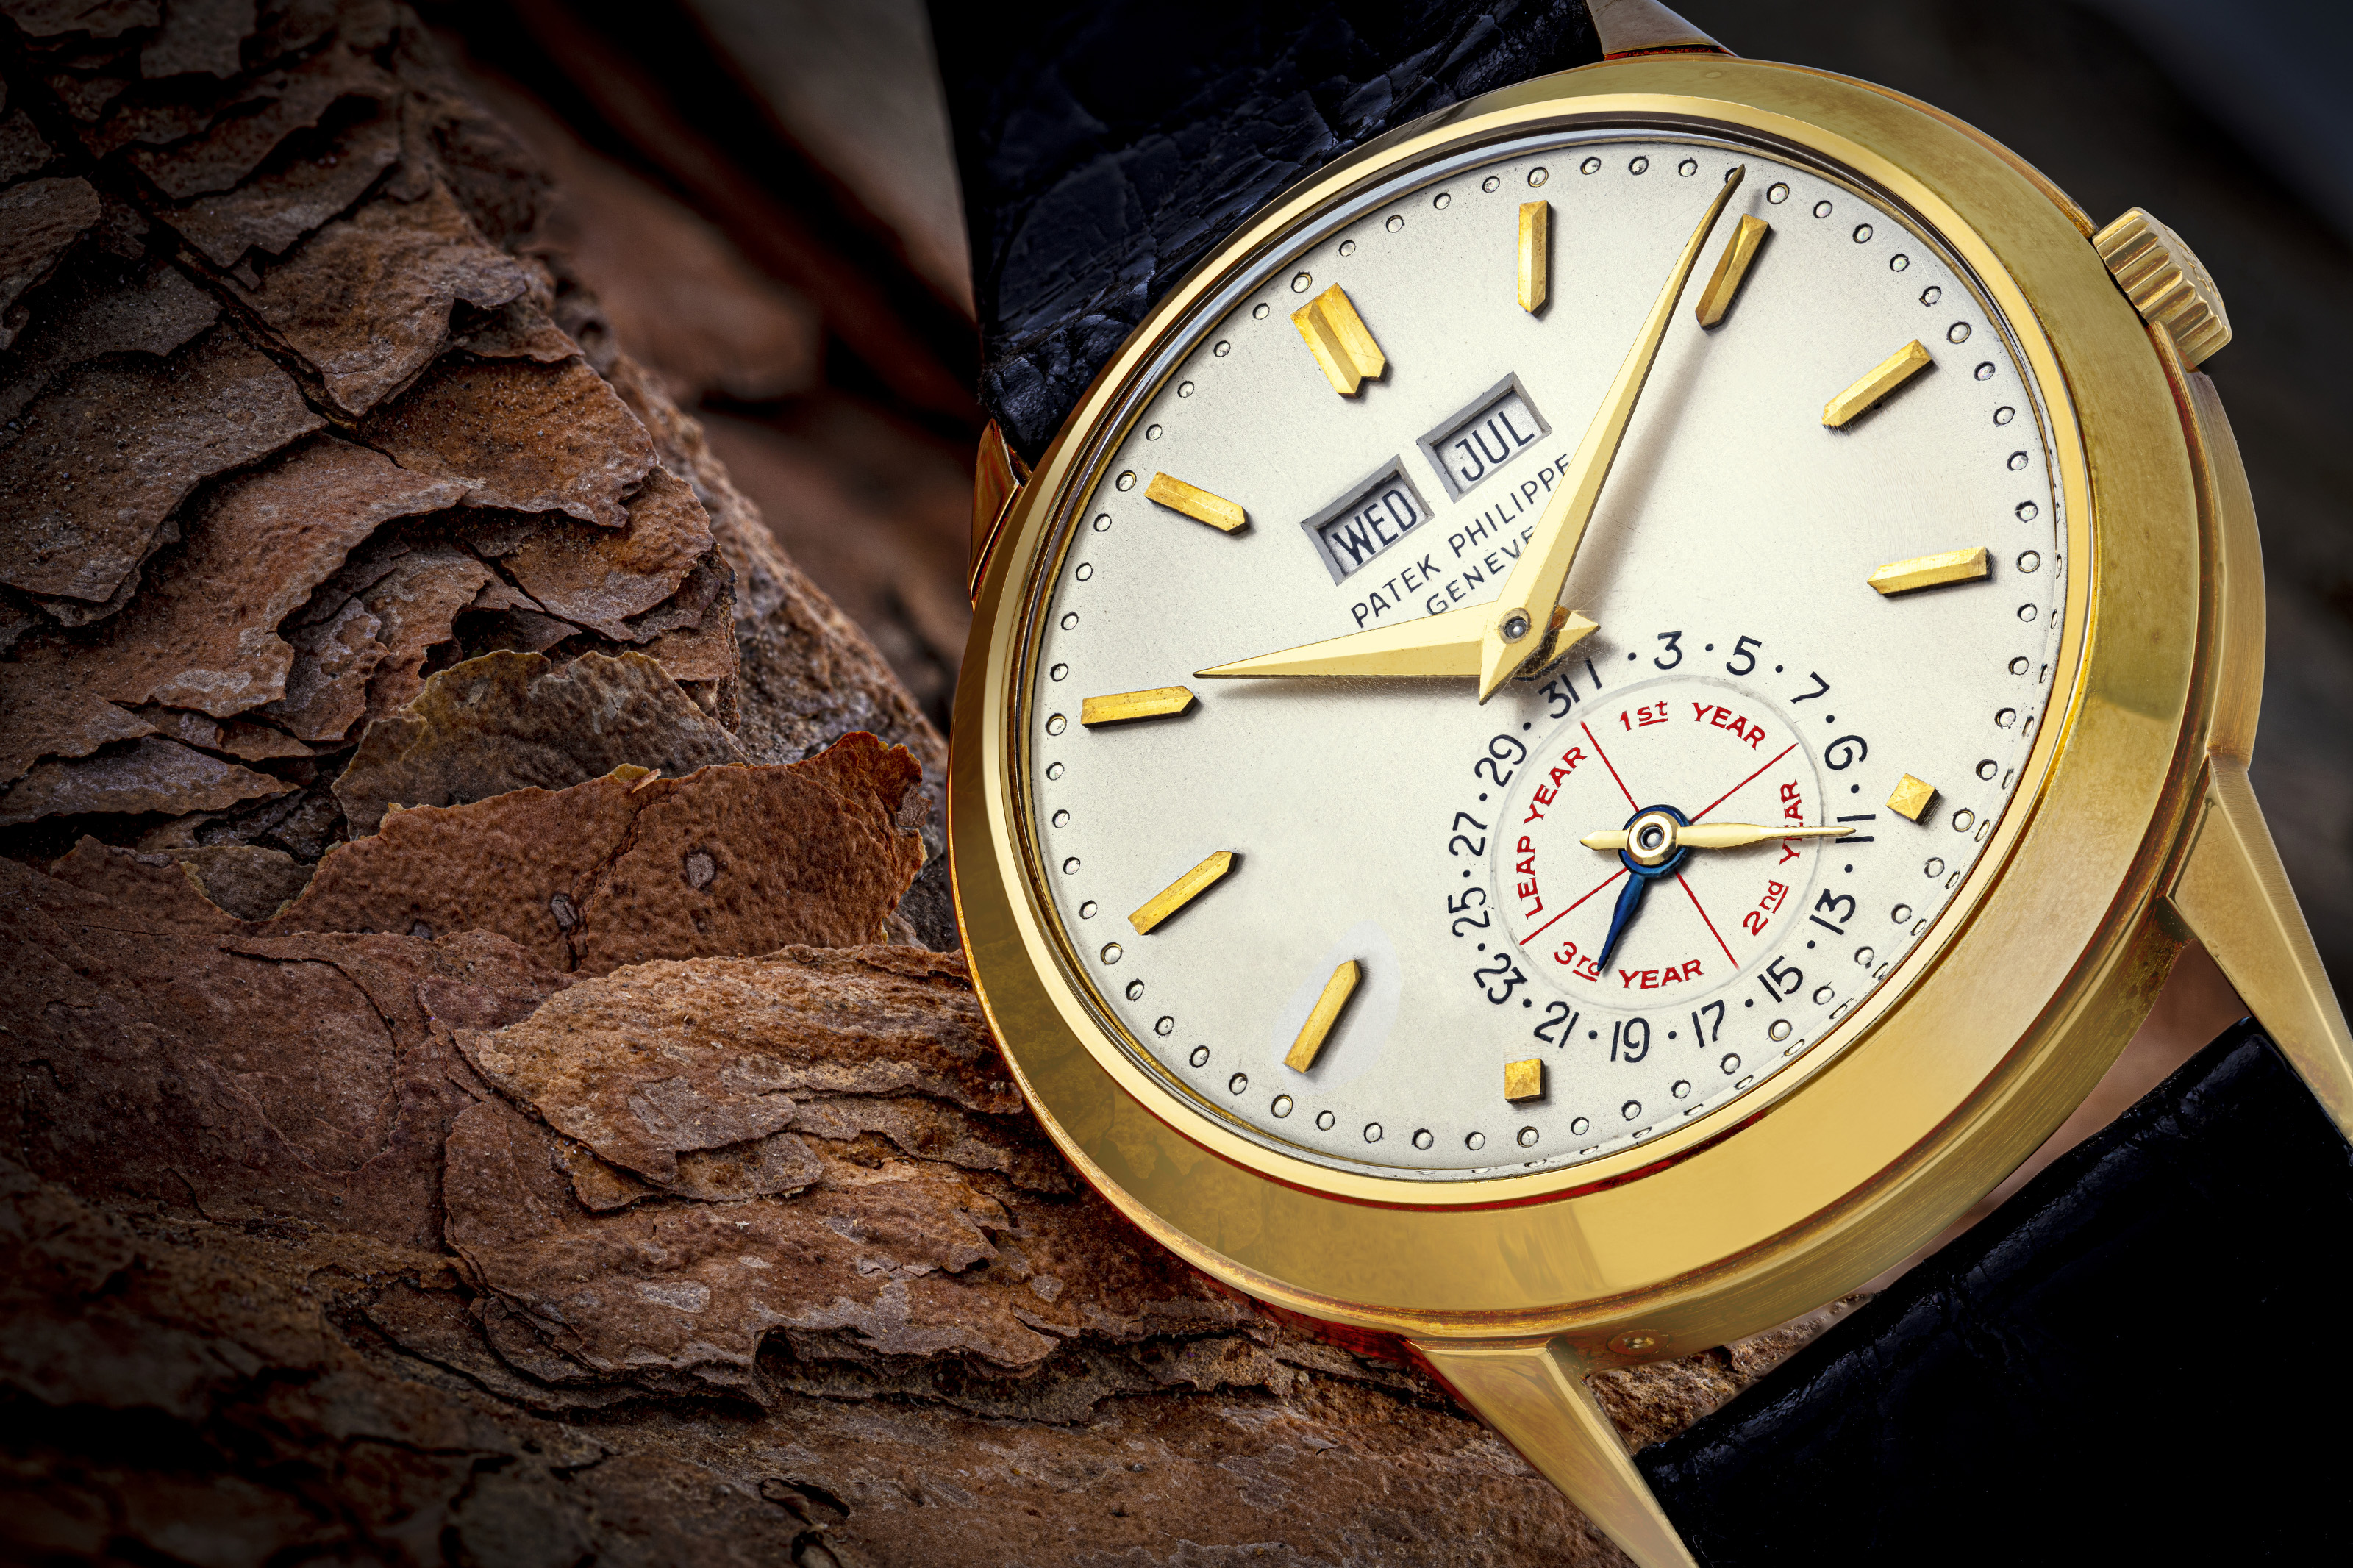 """The Patek Philippe ref. 3448 """"Alan Banbery"""" sold for a record CHF 3.36 million at Christie's Hong Kong auction in May."""